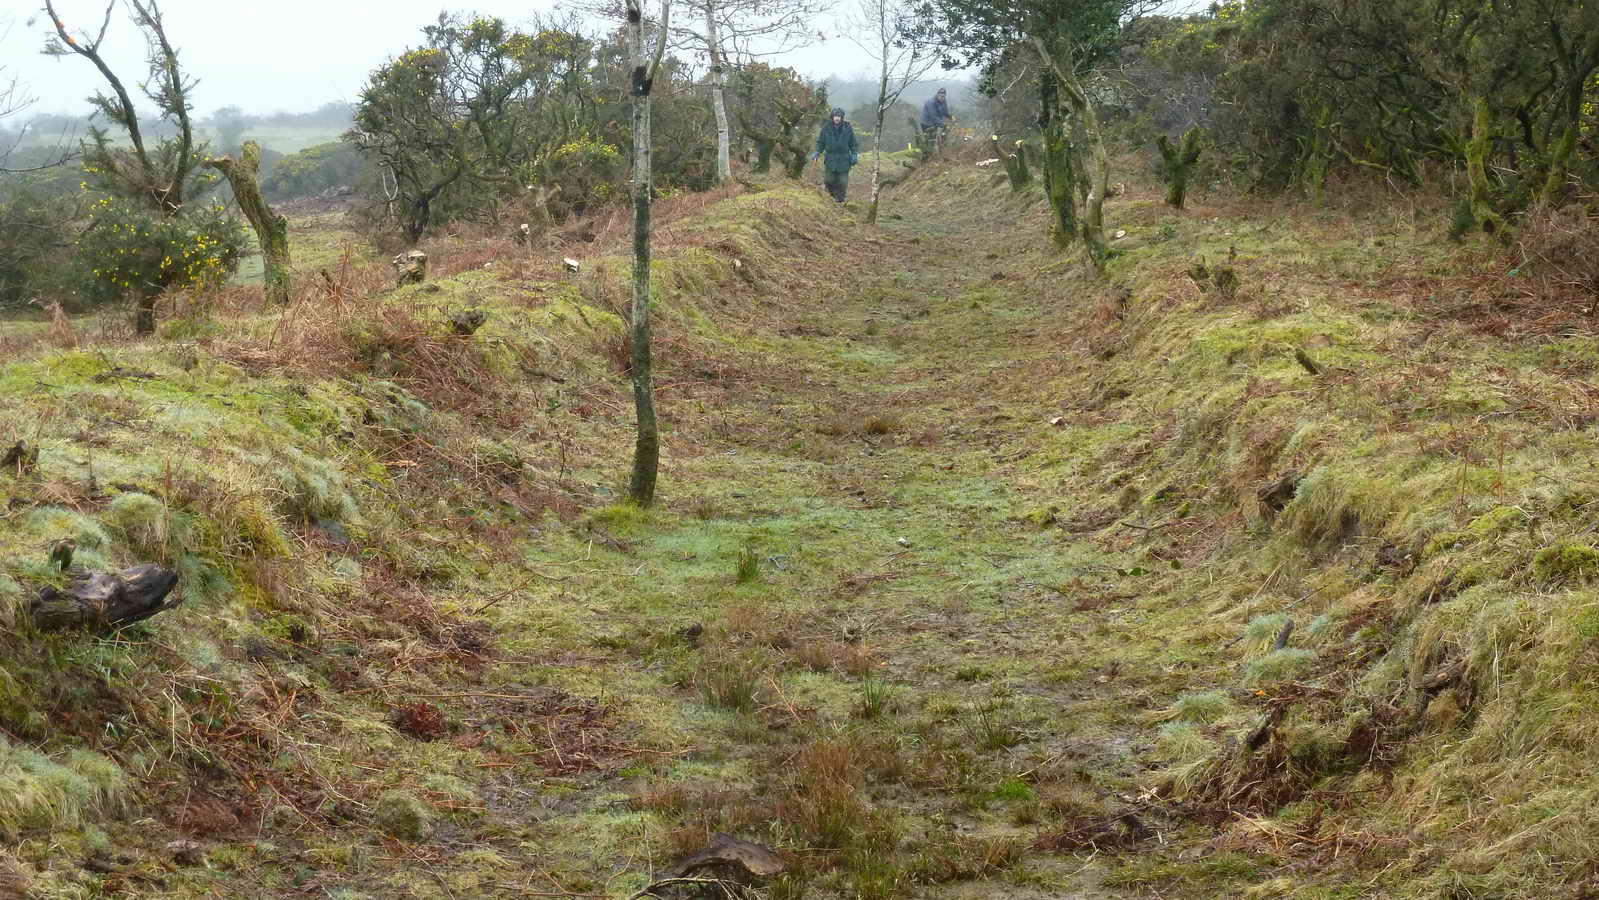 A section of cleared leat.